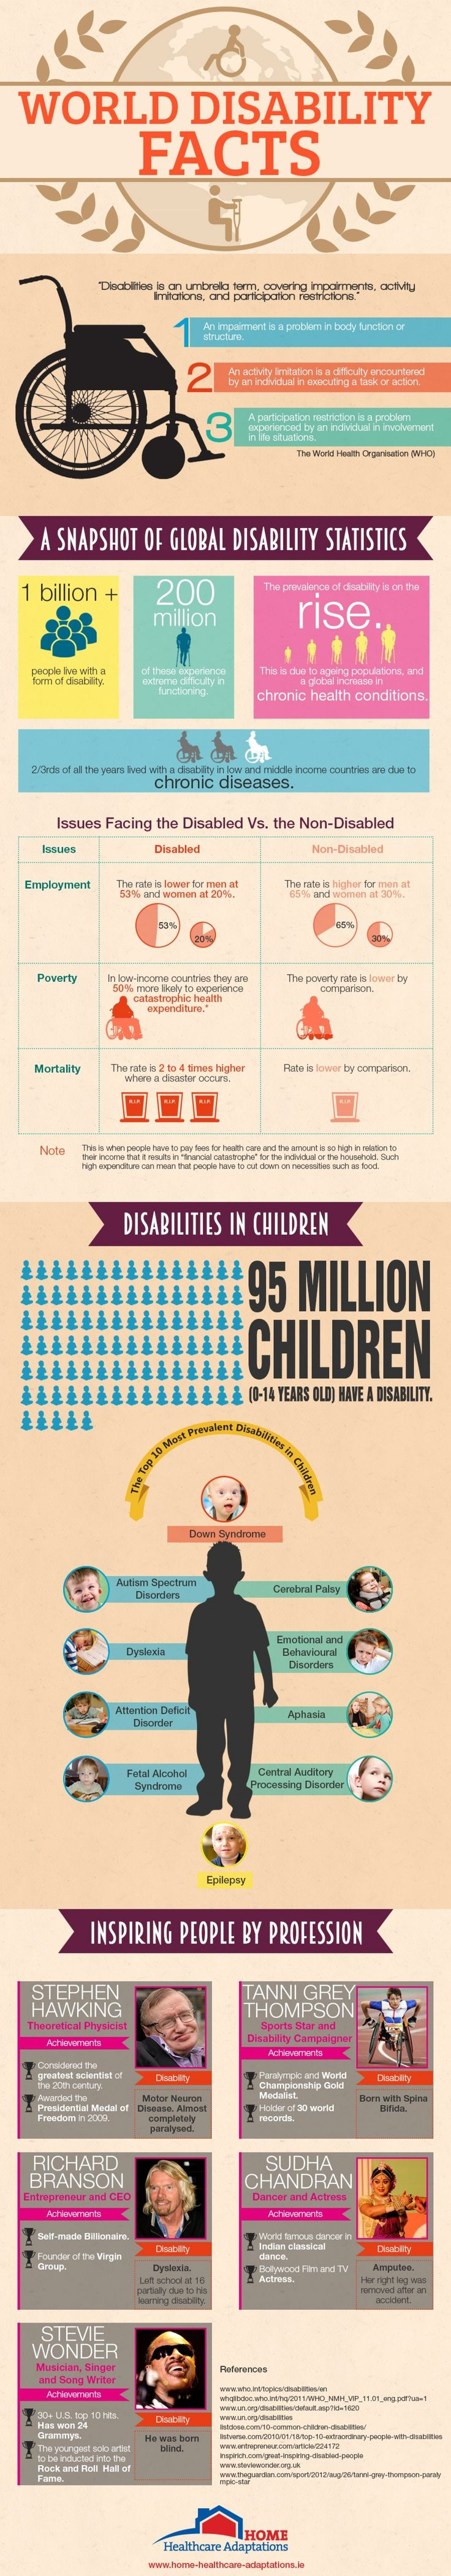 World Disability Facts Infographic - 1 Billion People Live with a Form of Disability Infographicwww.SELLaBIZ.gr ΠΩΛΗΣΕΙΣ ΕΠΙΧΕΙΡΗΣΕΩΝ ΔΩΡΕΑΝ ΑΓΓΕΛΙΕΣ ΠΩΛΗΣΗΣ ΕΠΙΧΕΙΡΗΣΗΣ BUSINESS FOR SALE FREE OF CHARGE PUBLICATION